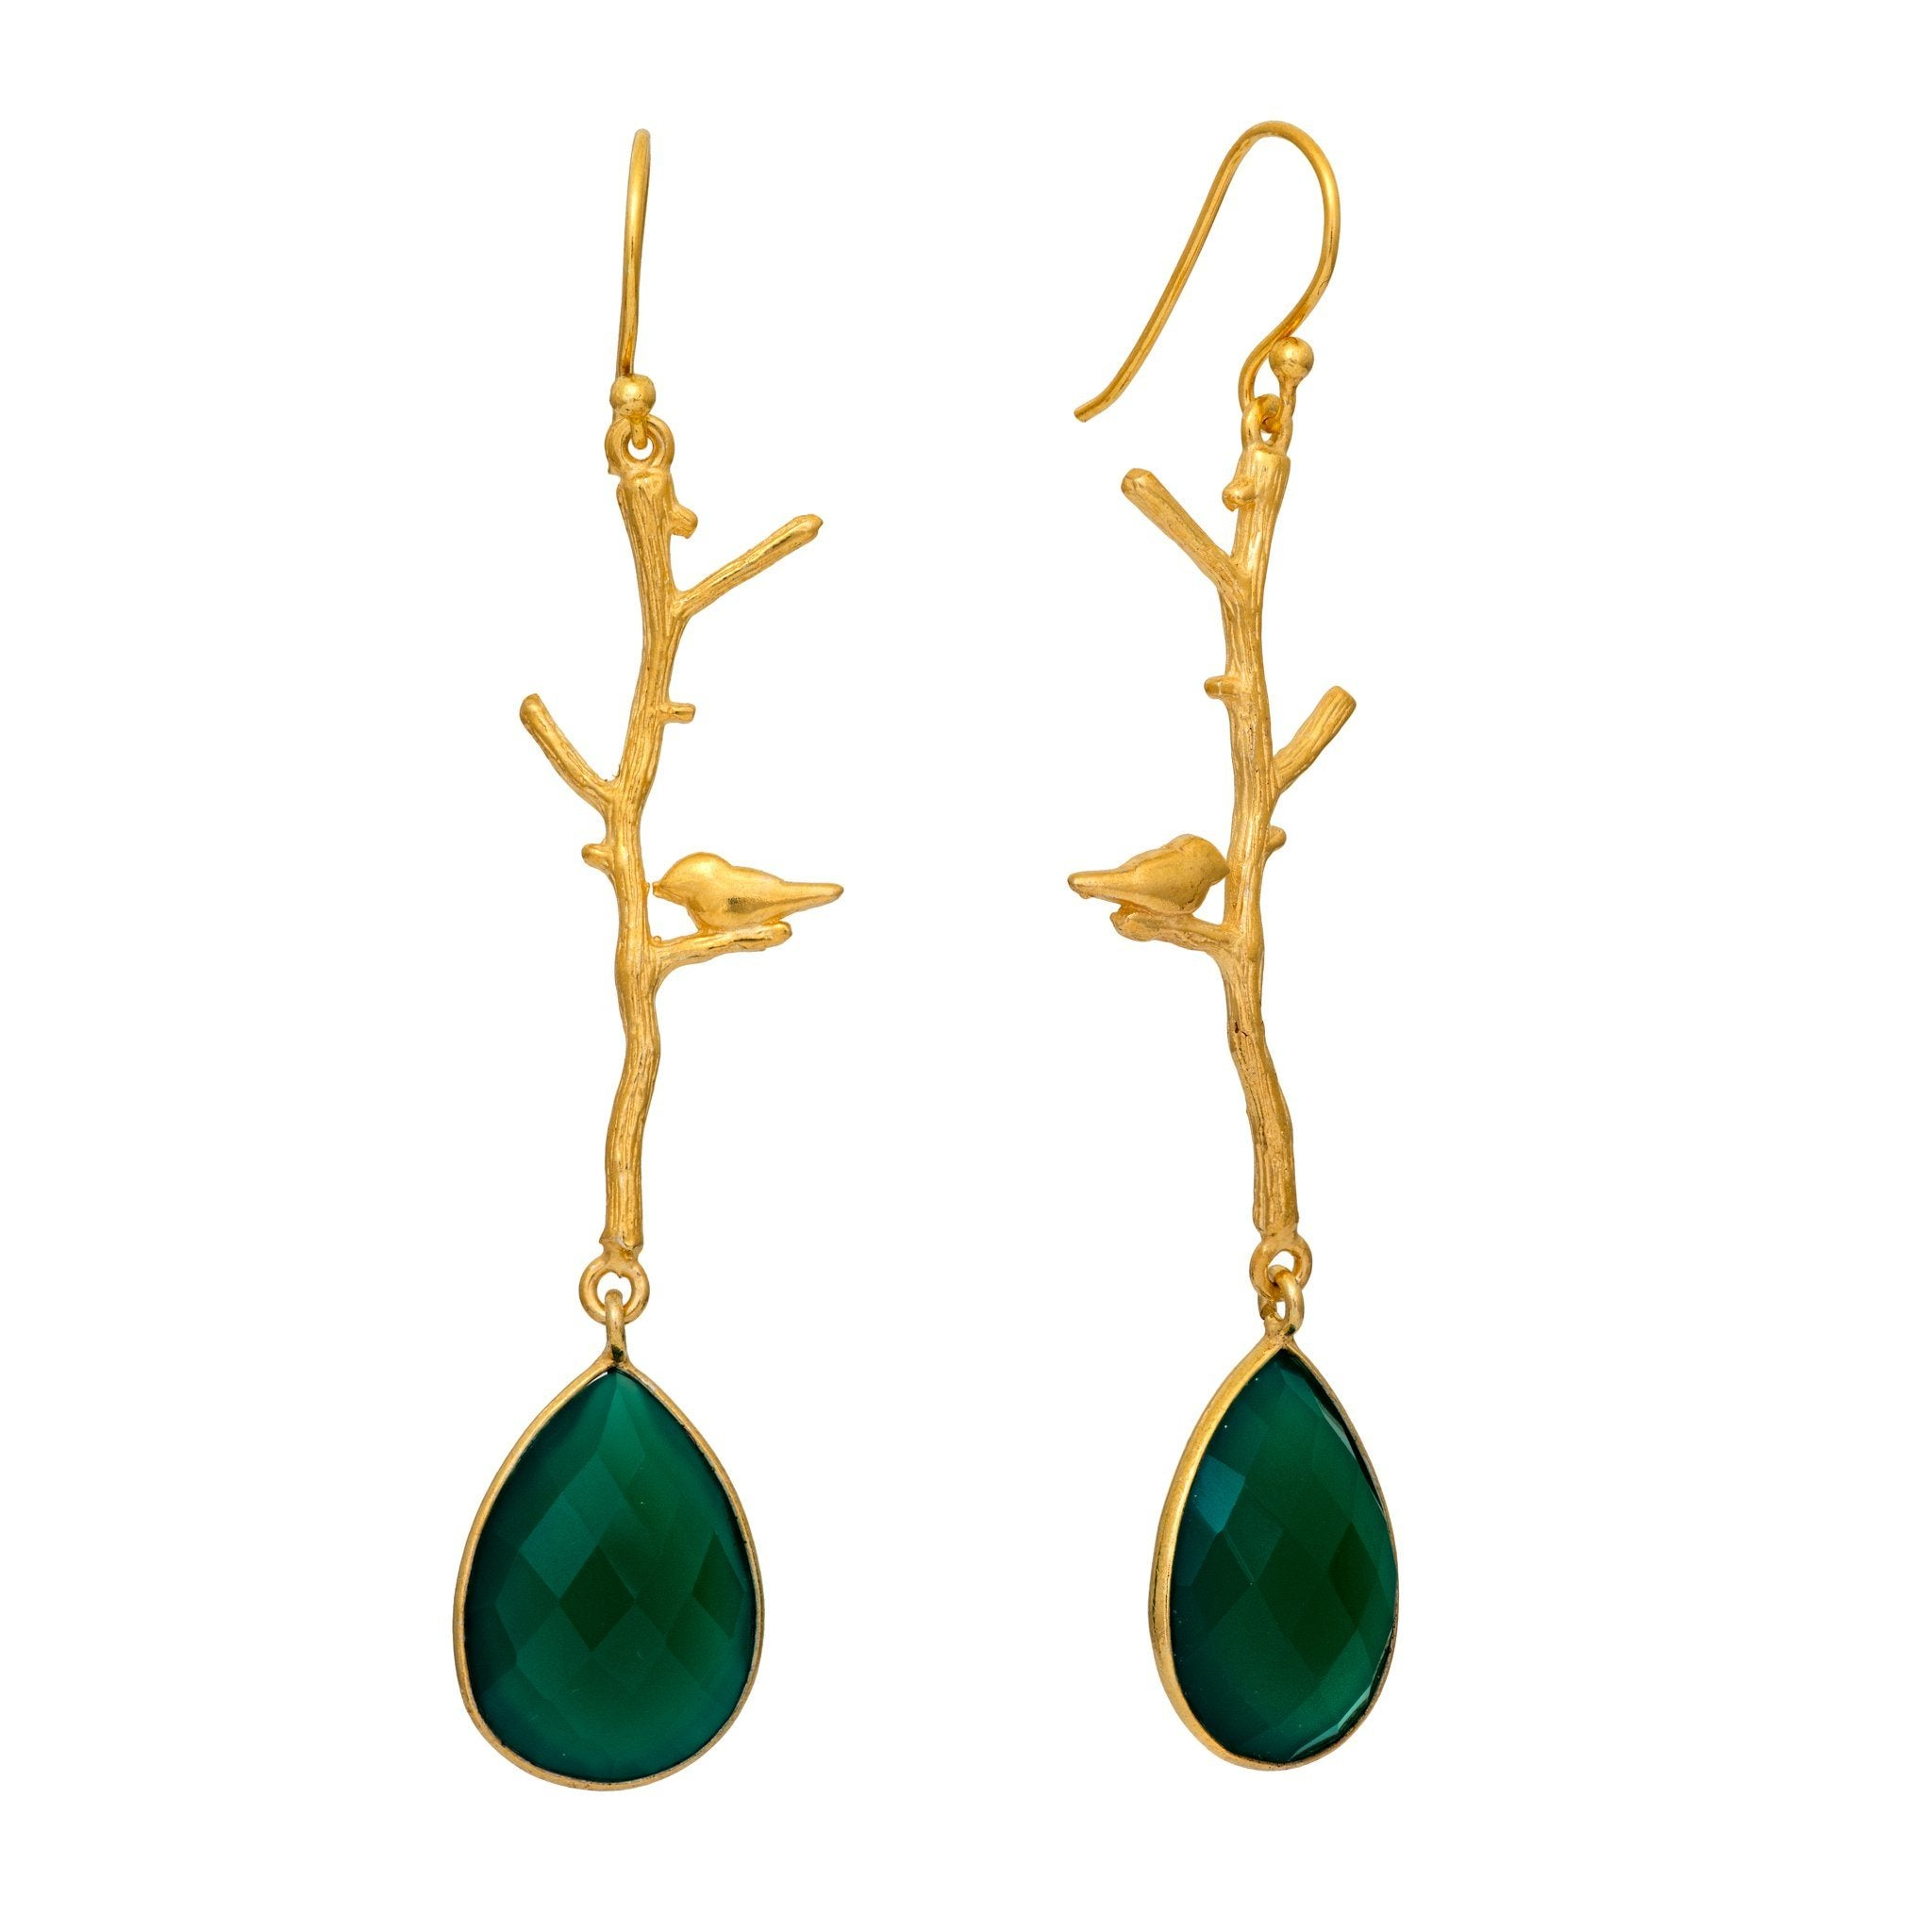 NOK green onyx earrings - MadamSiam